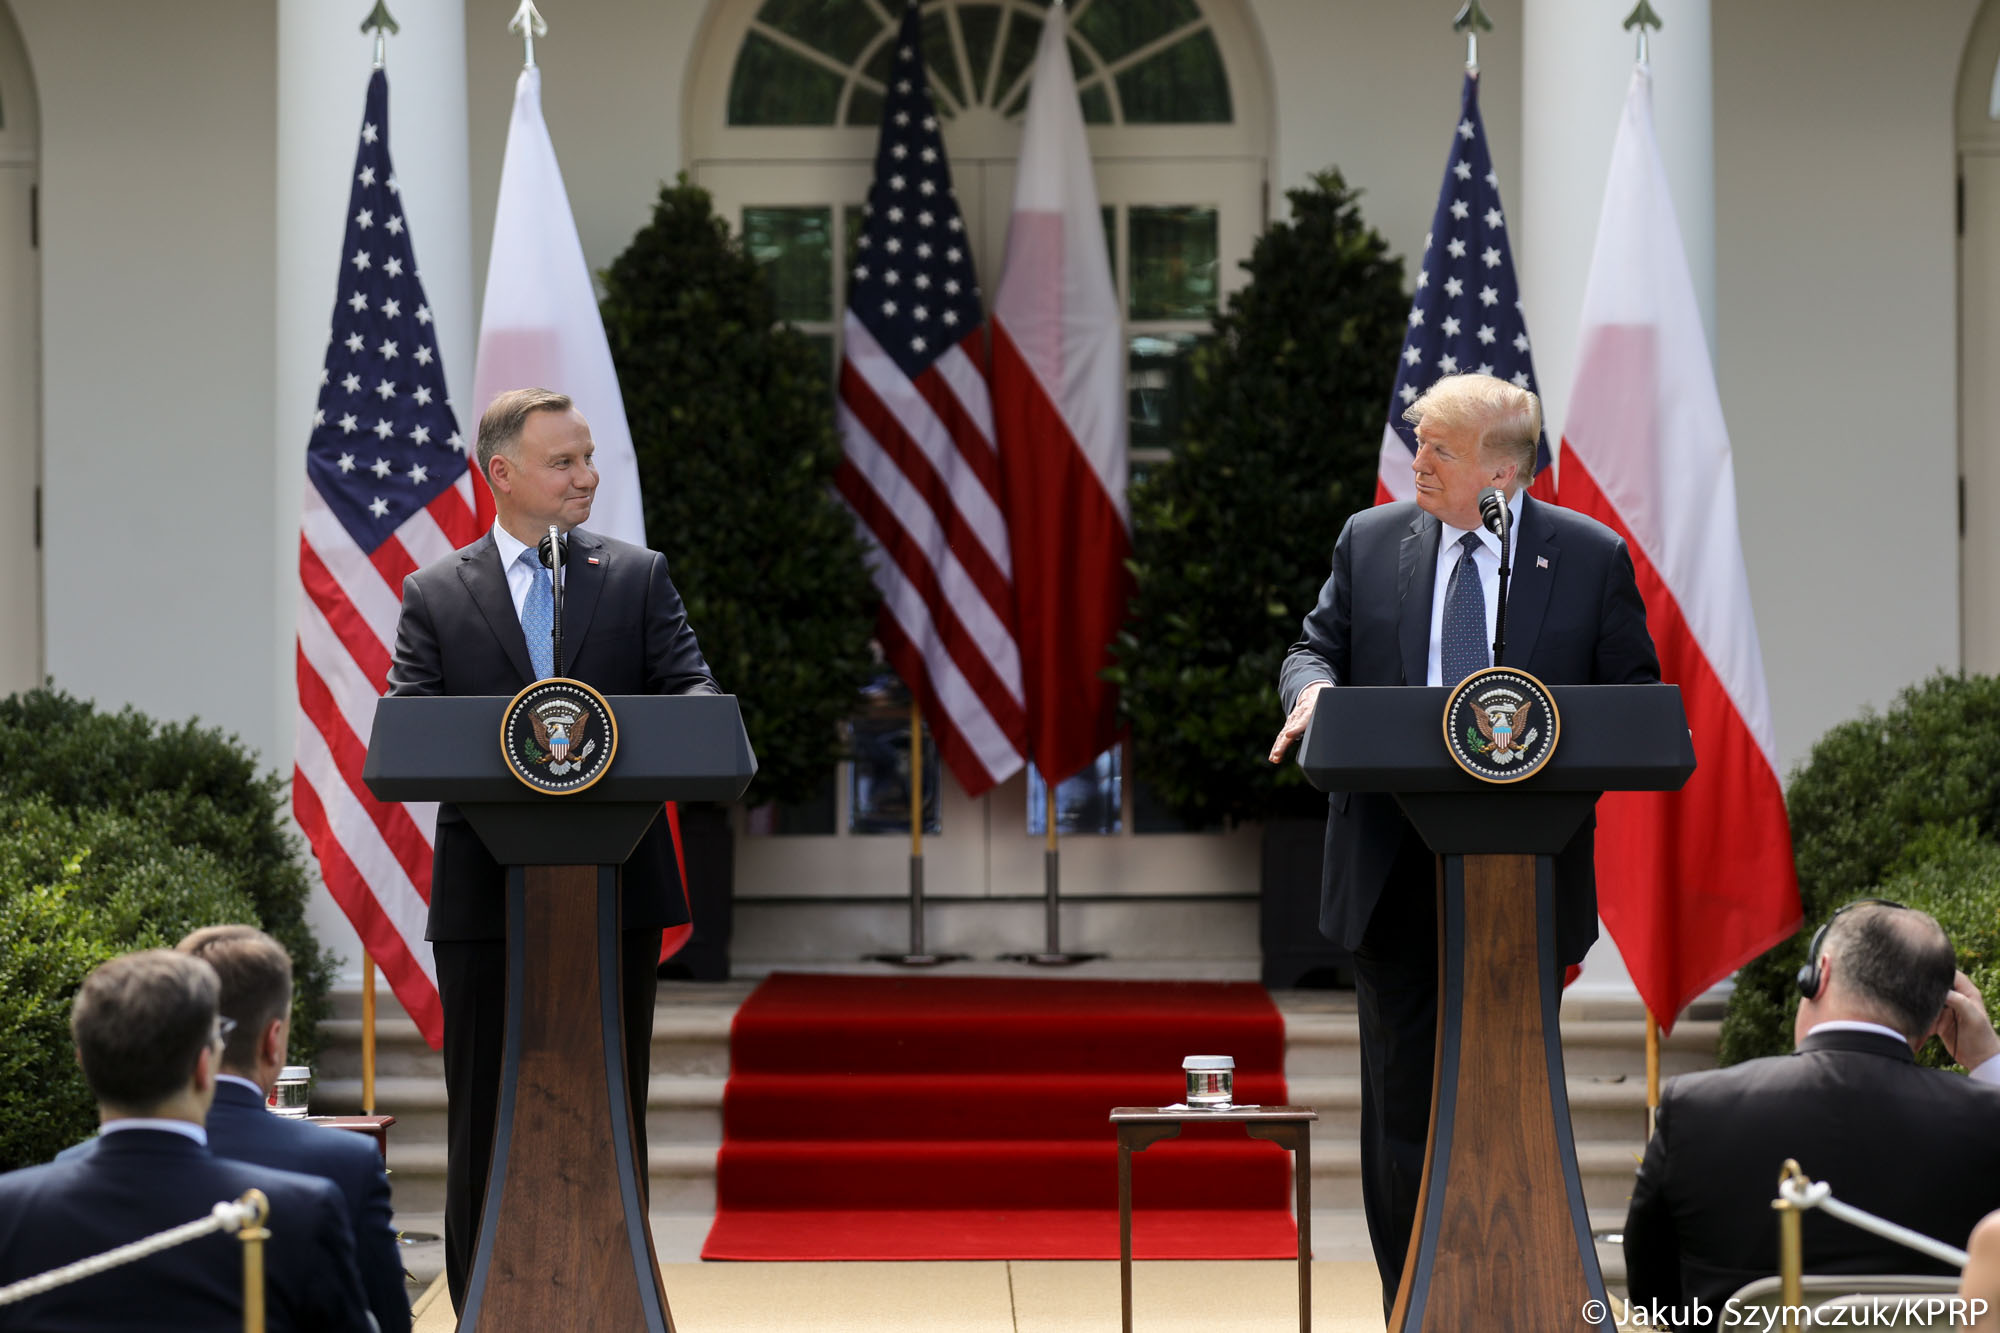 WI Daily News – Poland and US strengthen ties | Polish humanitarian aid for Ukraine and Moldova